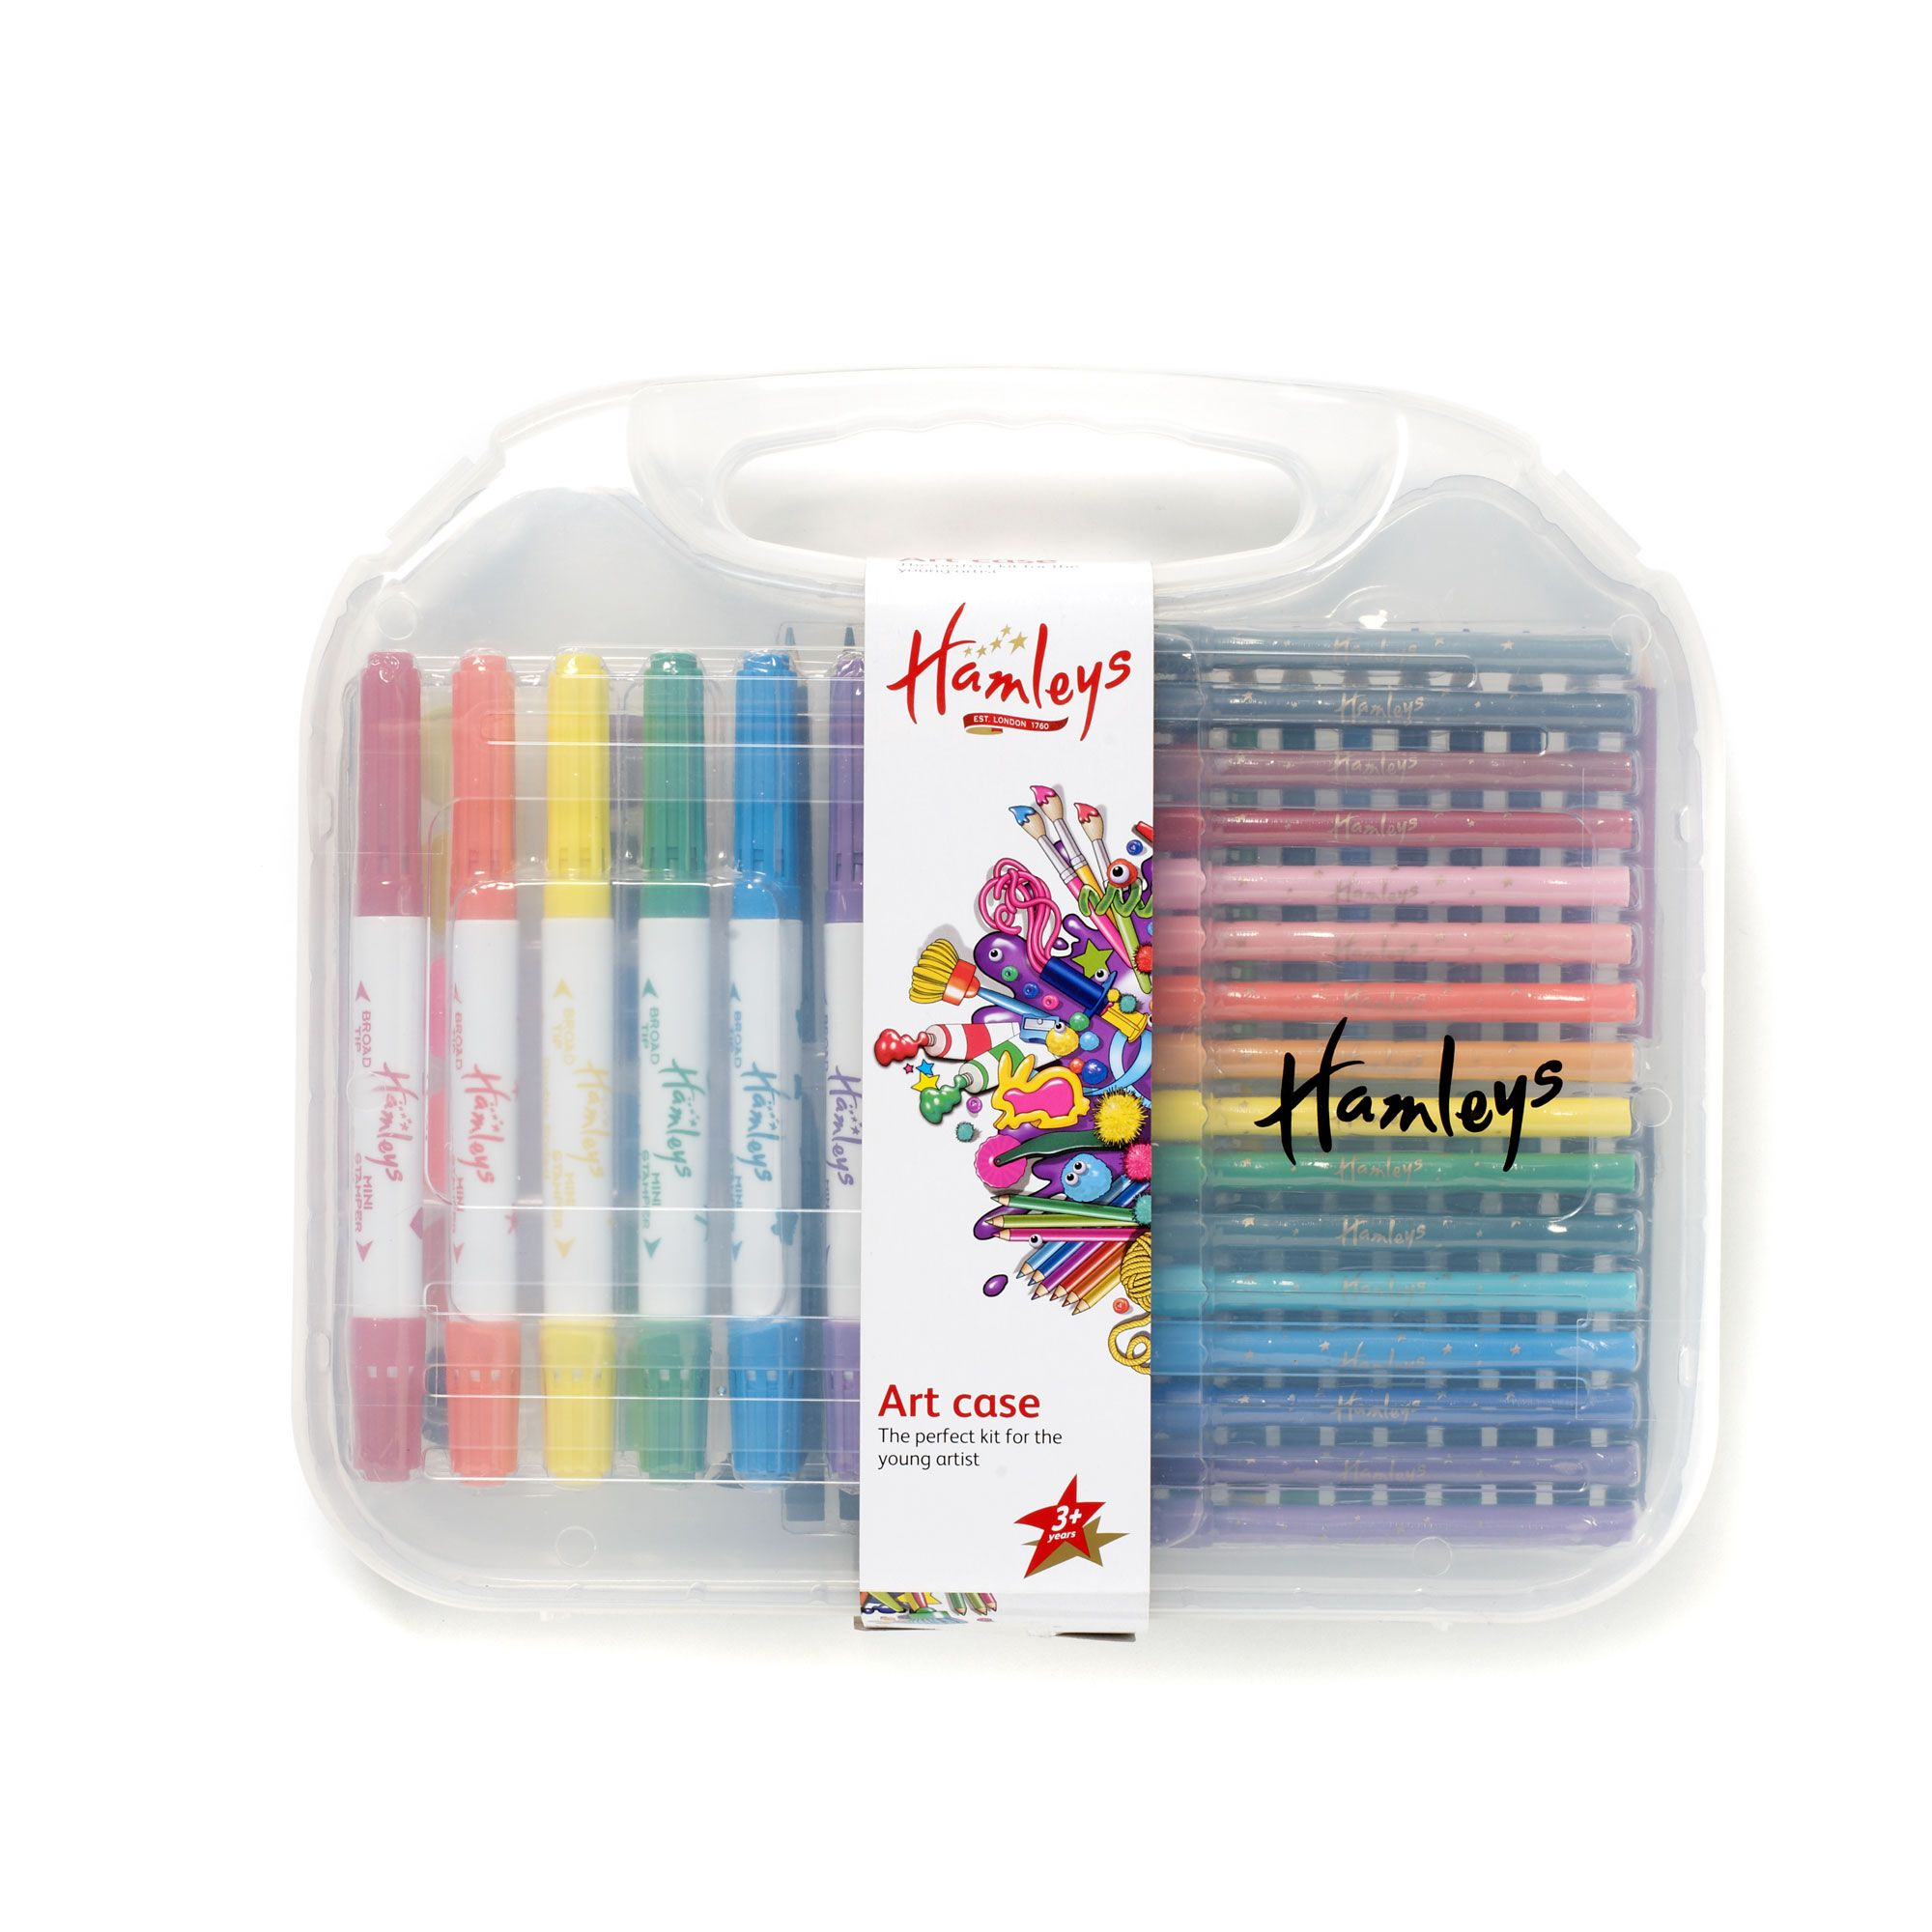 Hamleys art case